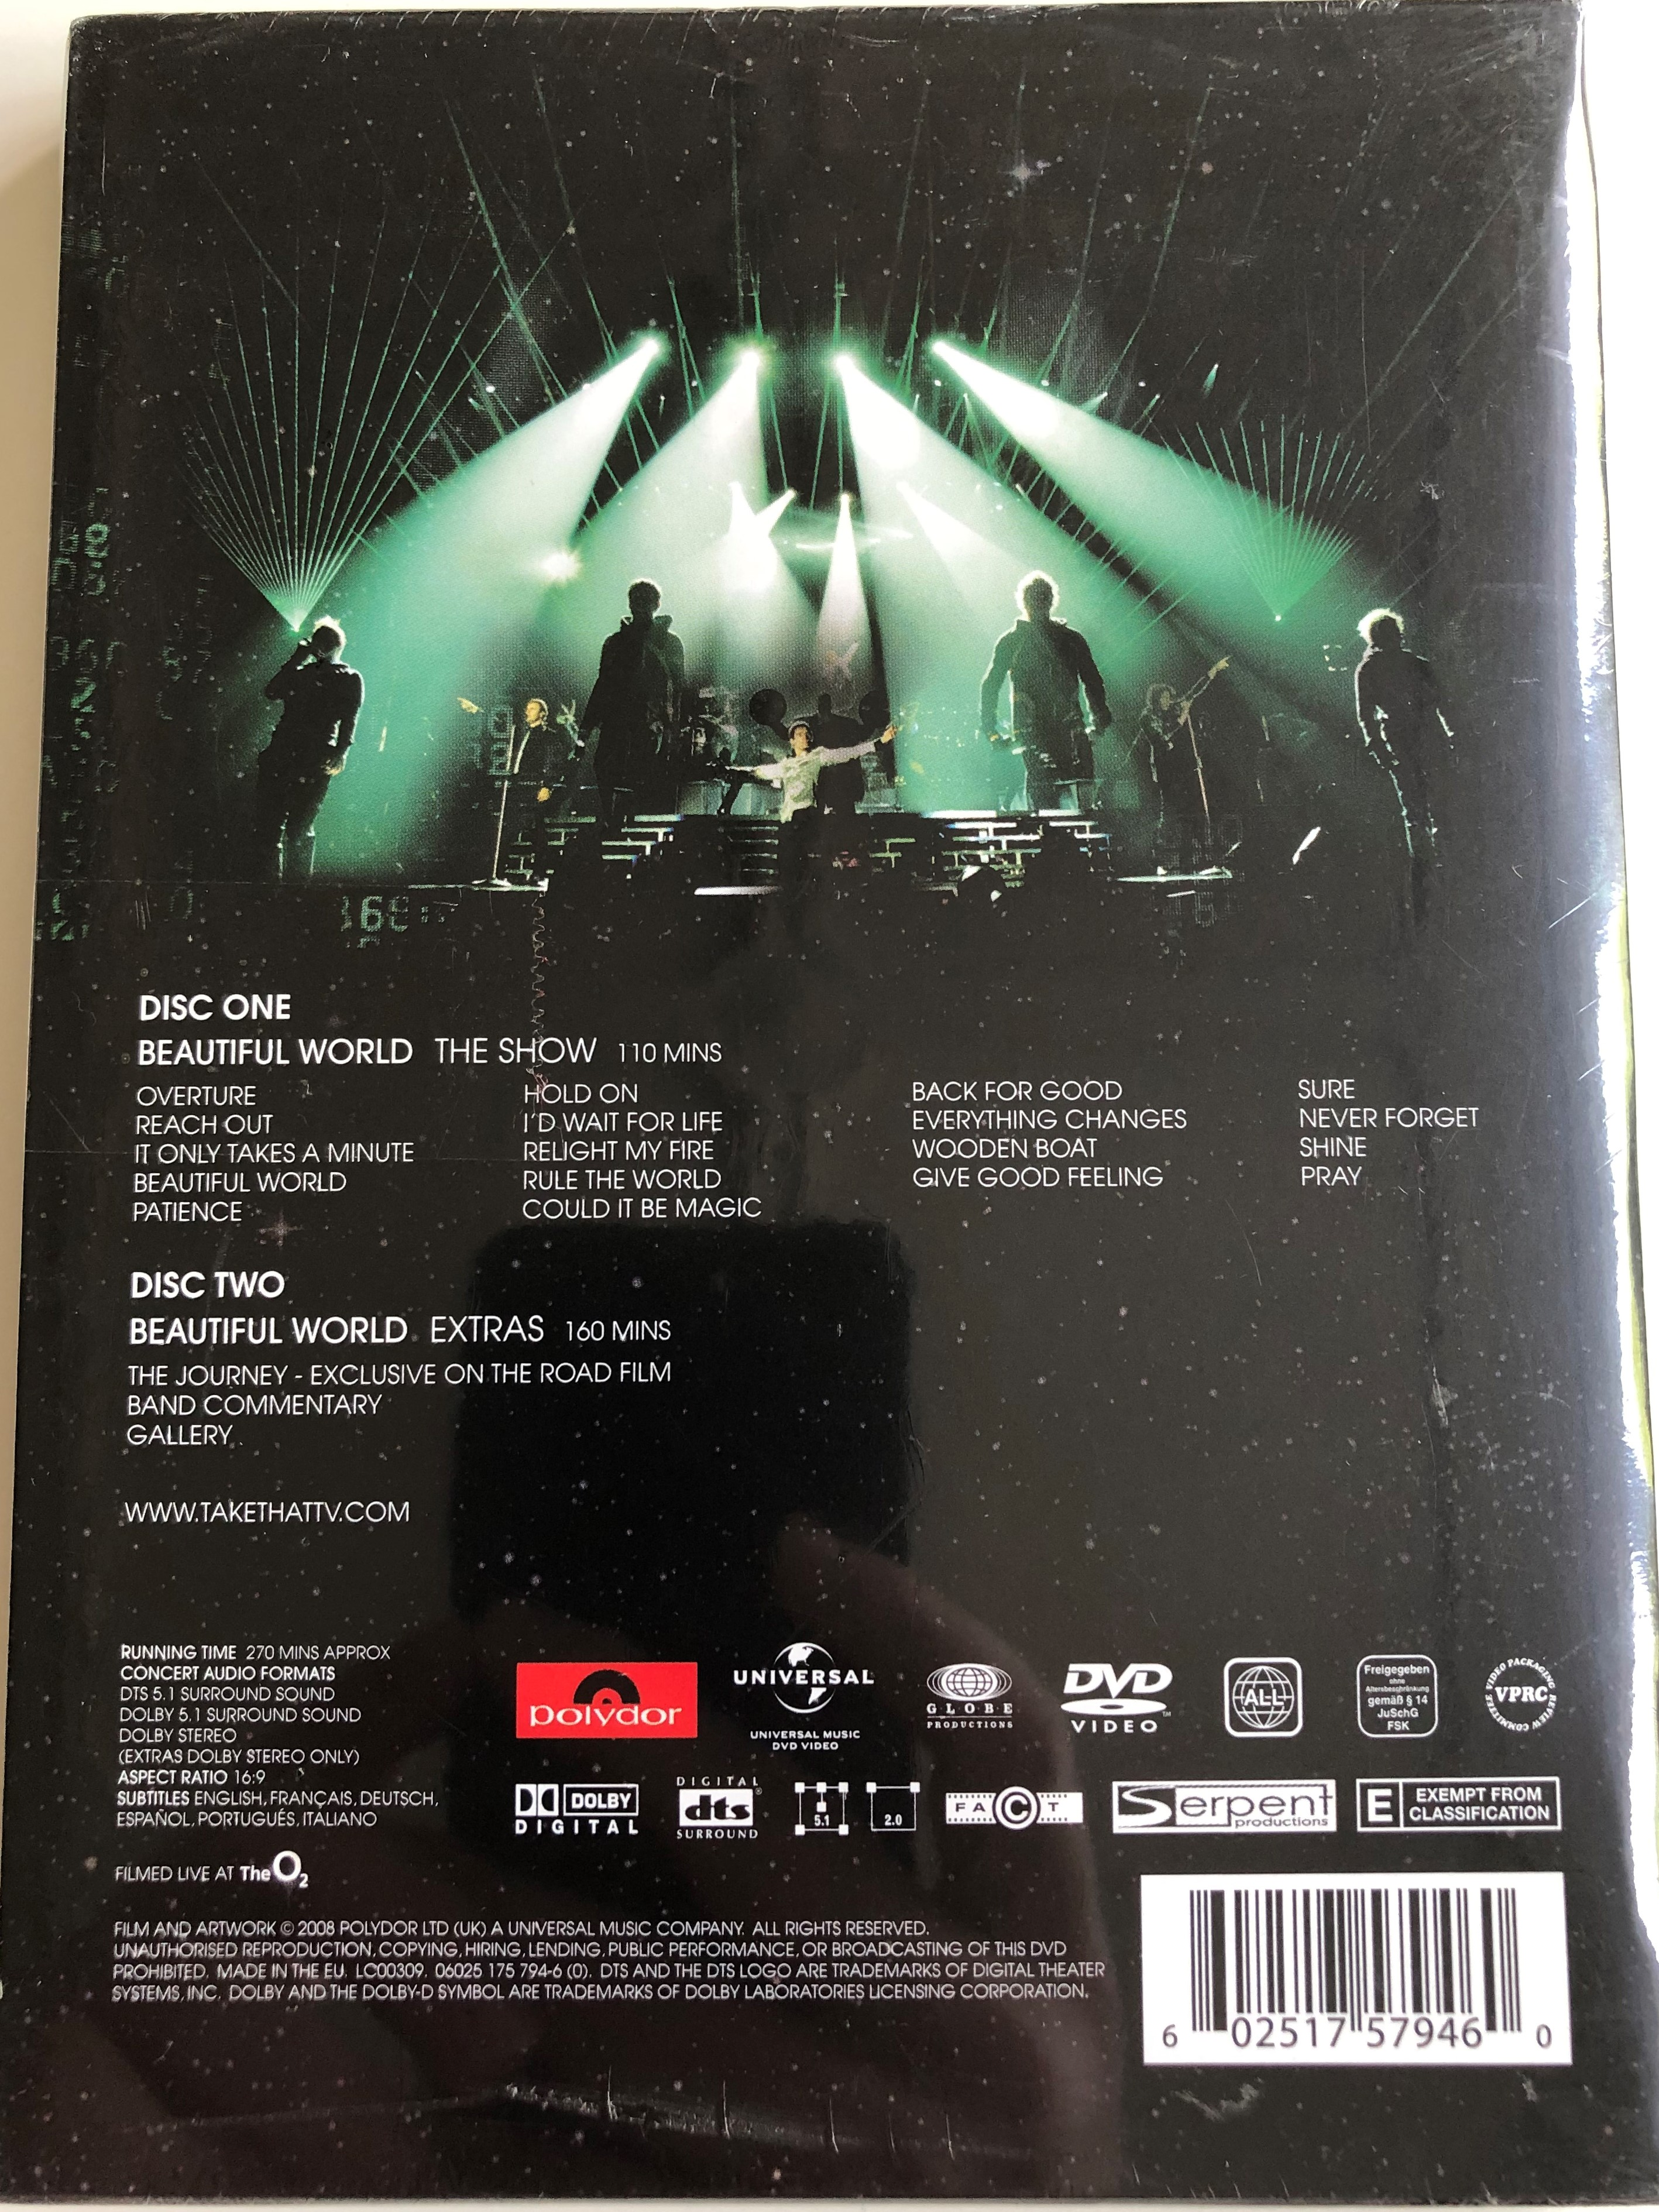 take-that-beautiful-world-live-dvd-2008-filmed-live-at-the-o2-special-2-disc-dvd-plus-exclusive-unseen-extras-the-journey-exclusive-on-the-road-film-2-.jpg